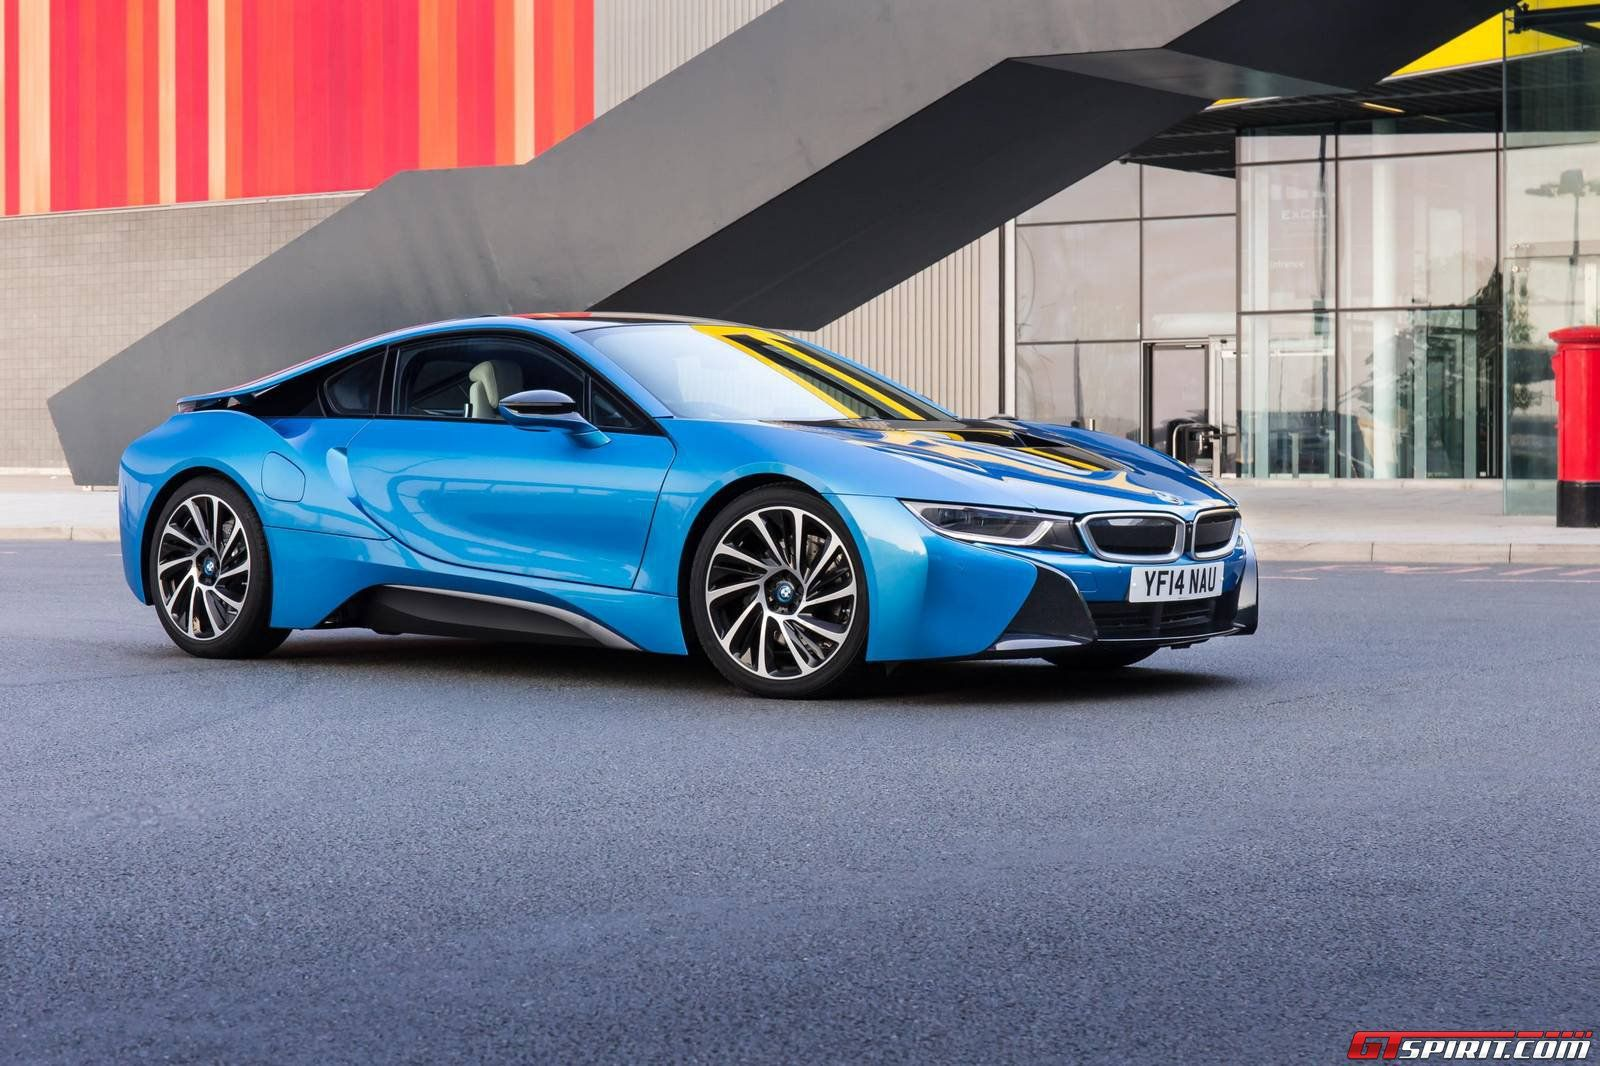 Bmw I8 Cars And Motorcycles Pinterest Bmw I8 Bmw And Cars